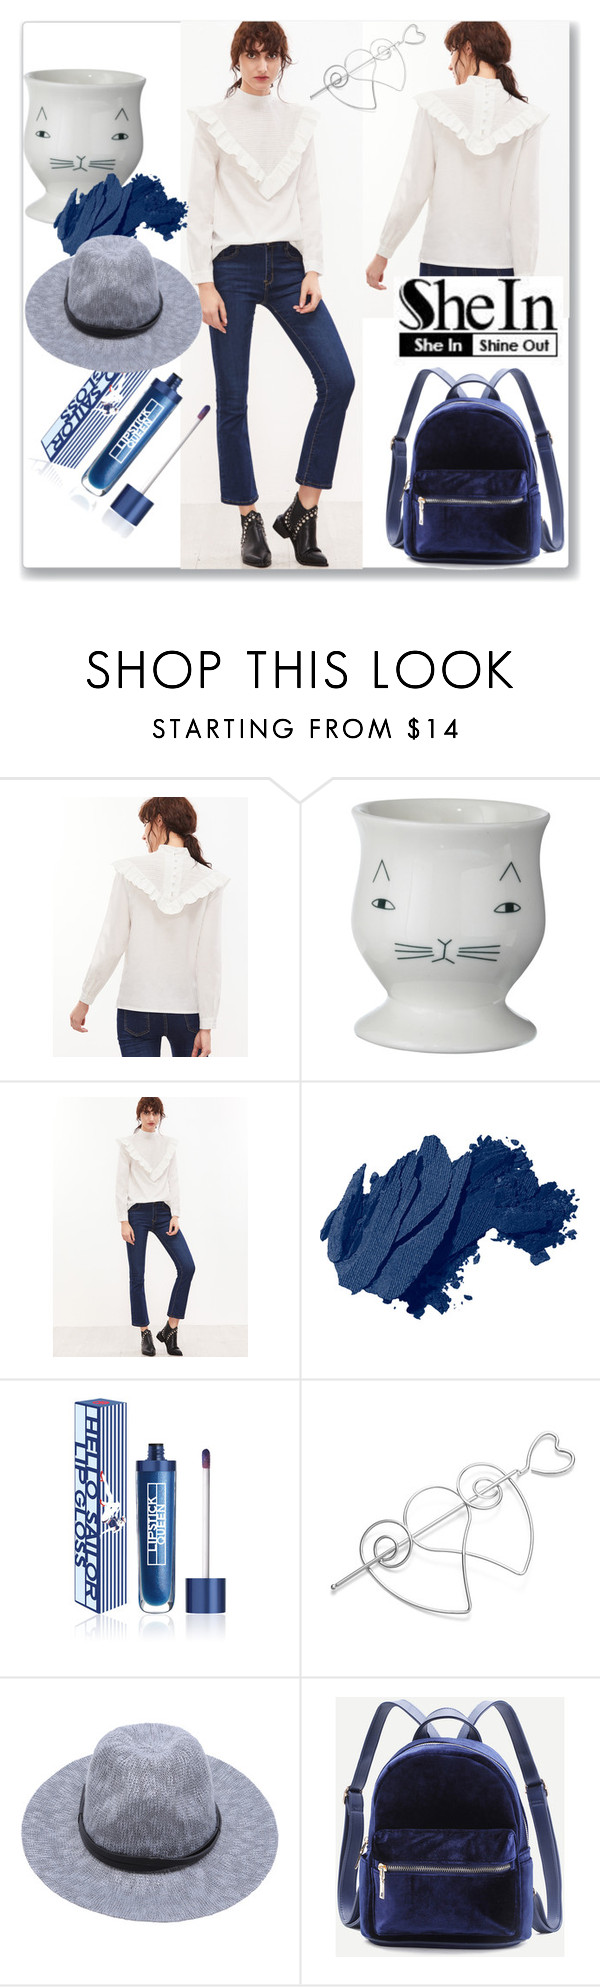 """Shein White Ruffle Blouse"" by ludmyla-stoyan ❤ liked on Polyvore featuring Donna Wilson, Bobbi Brown Cosmetics, Lipstick Queen, white, ruffle, blouse and shein"